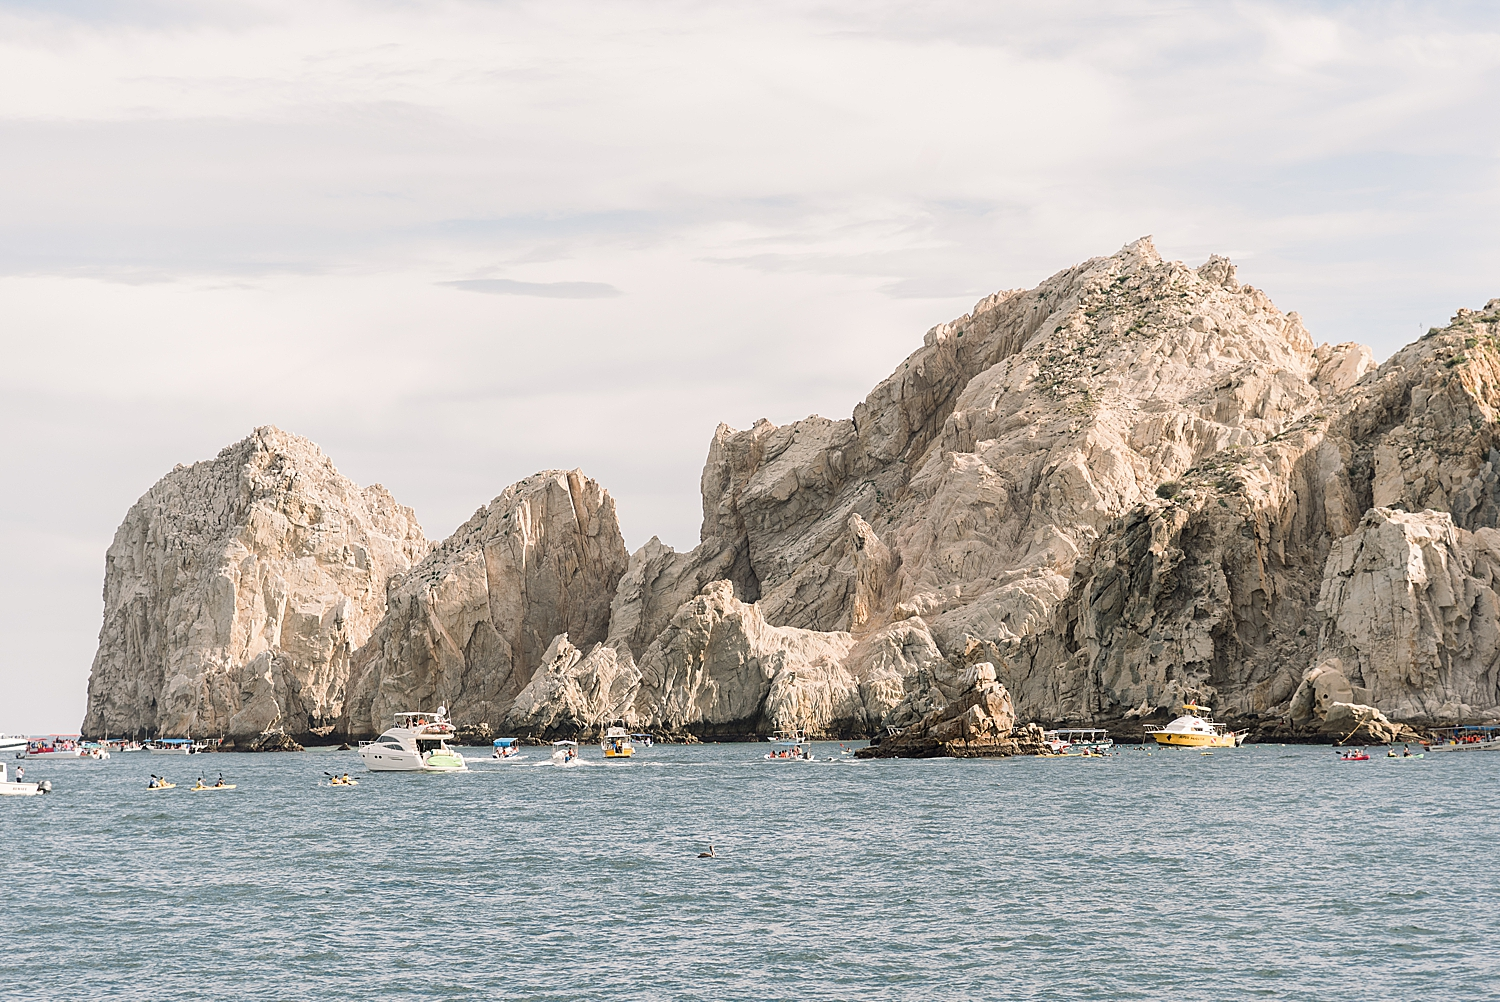 View of Cabo San Lucas from Carnival Splendor. Photo by Jade Min Photography.